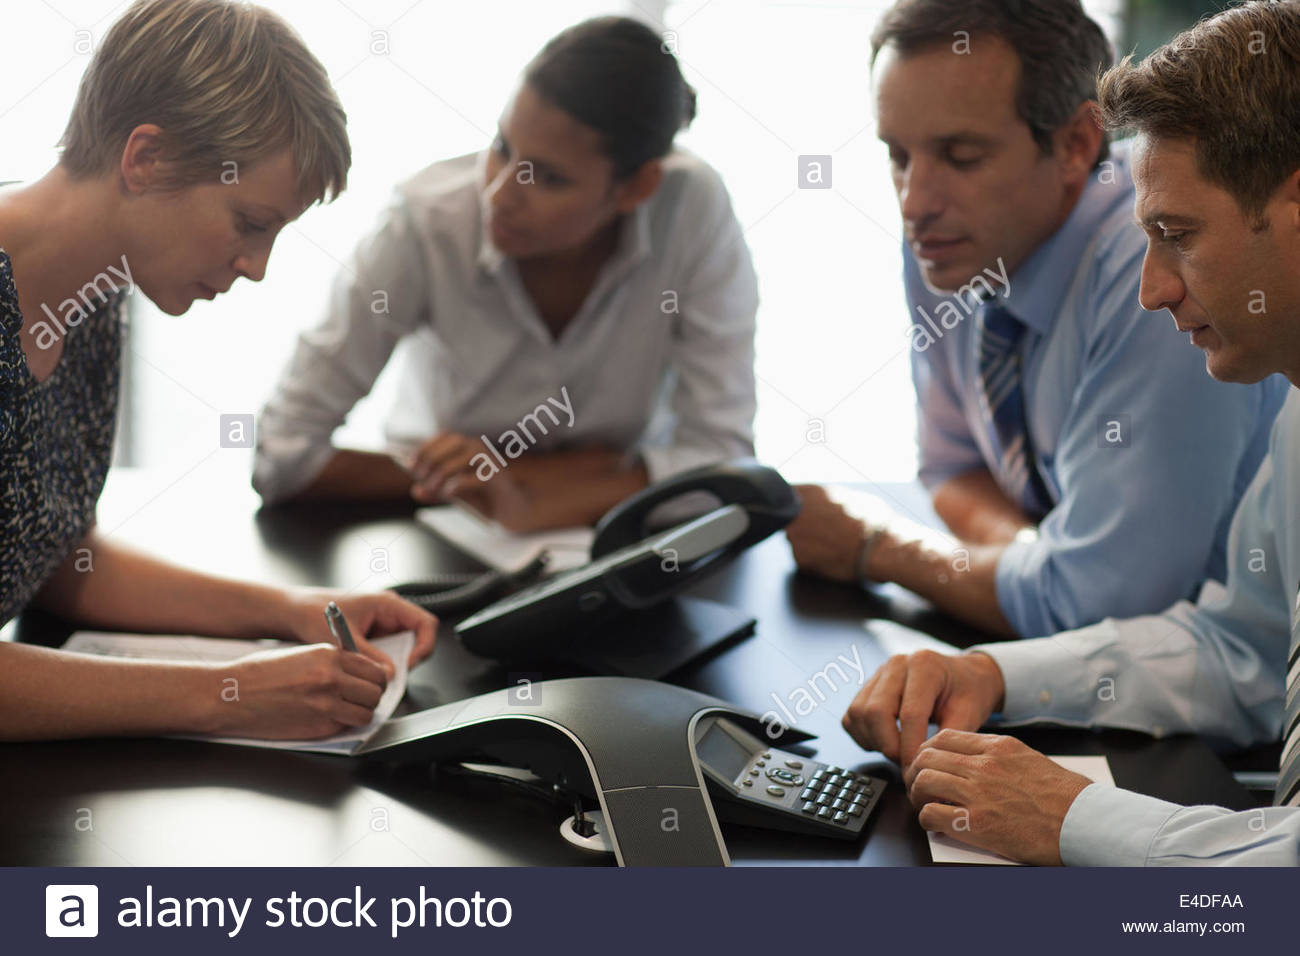 Business people talking on conference call - Stock Image